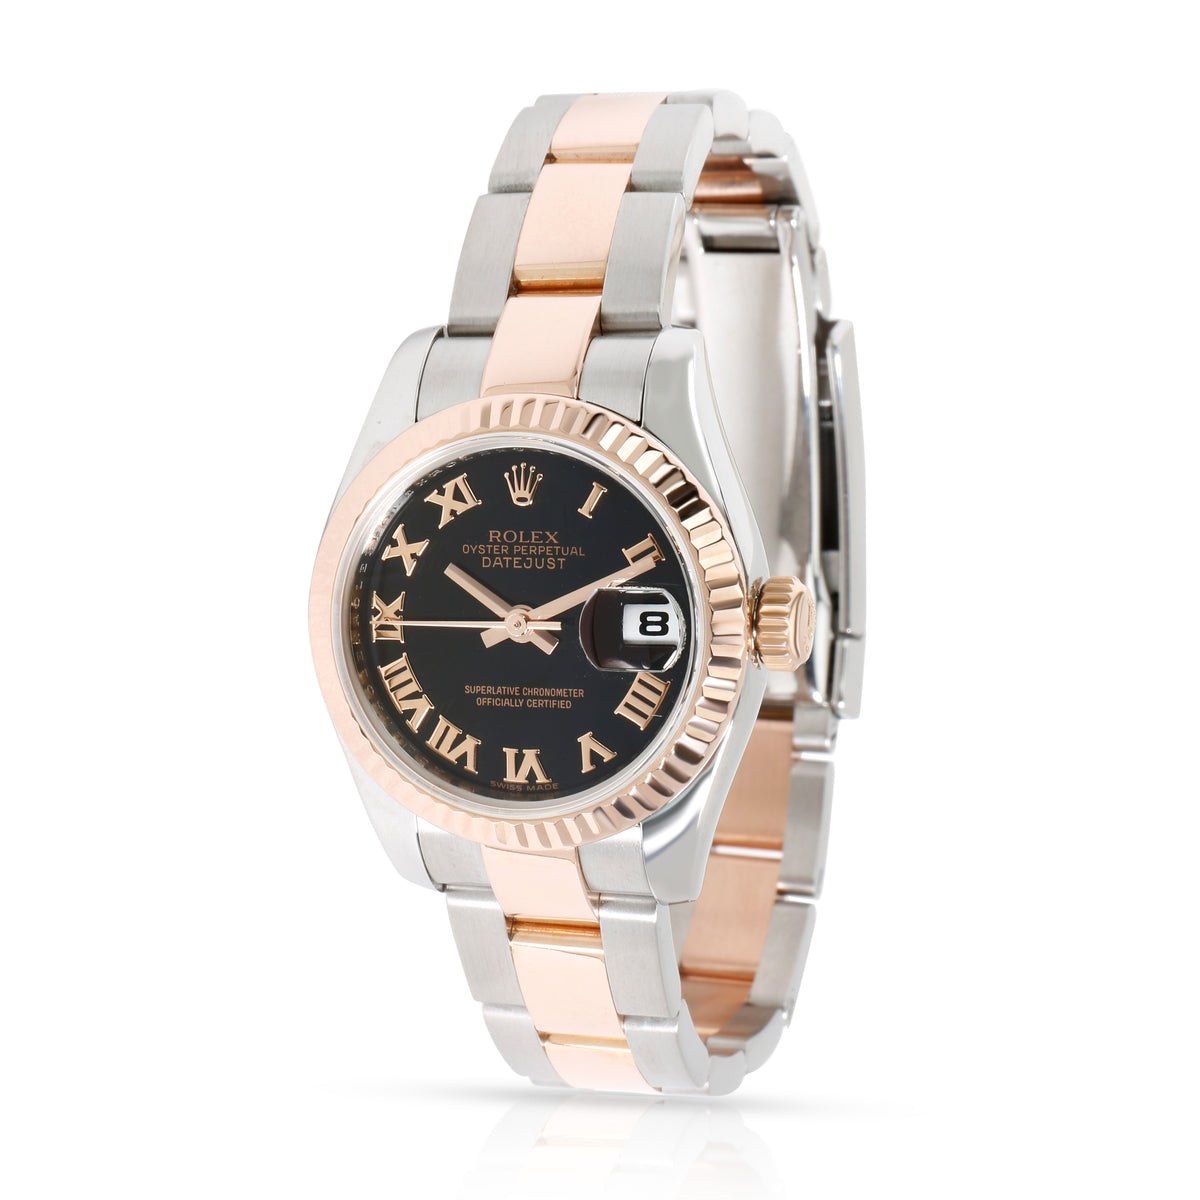 Rolex Datejust 179171 Women's Watch in 18kt Stainless Steel/Rose Gold